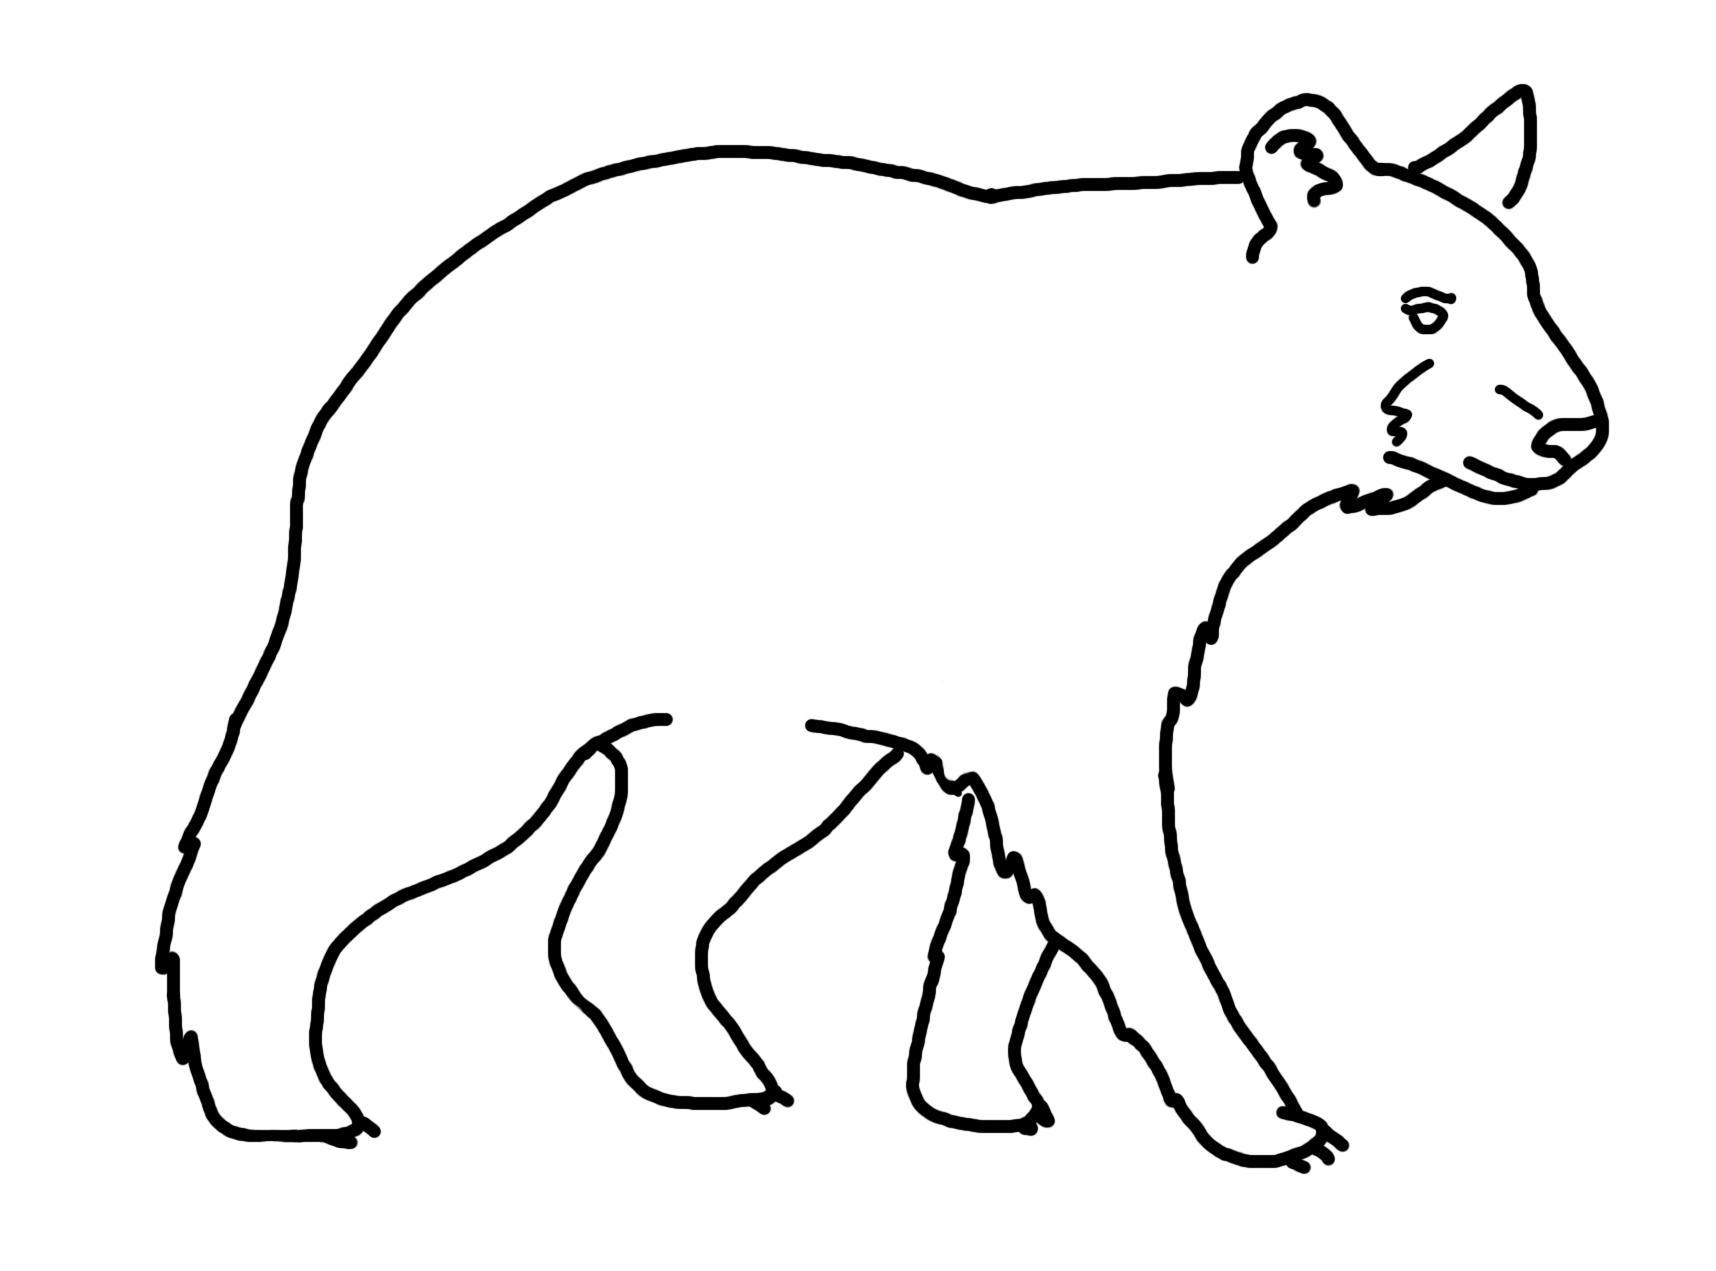 Line Art Bear : American black bear clipart suggest